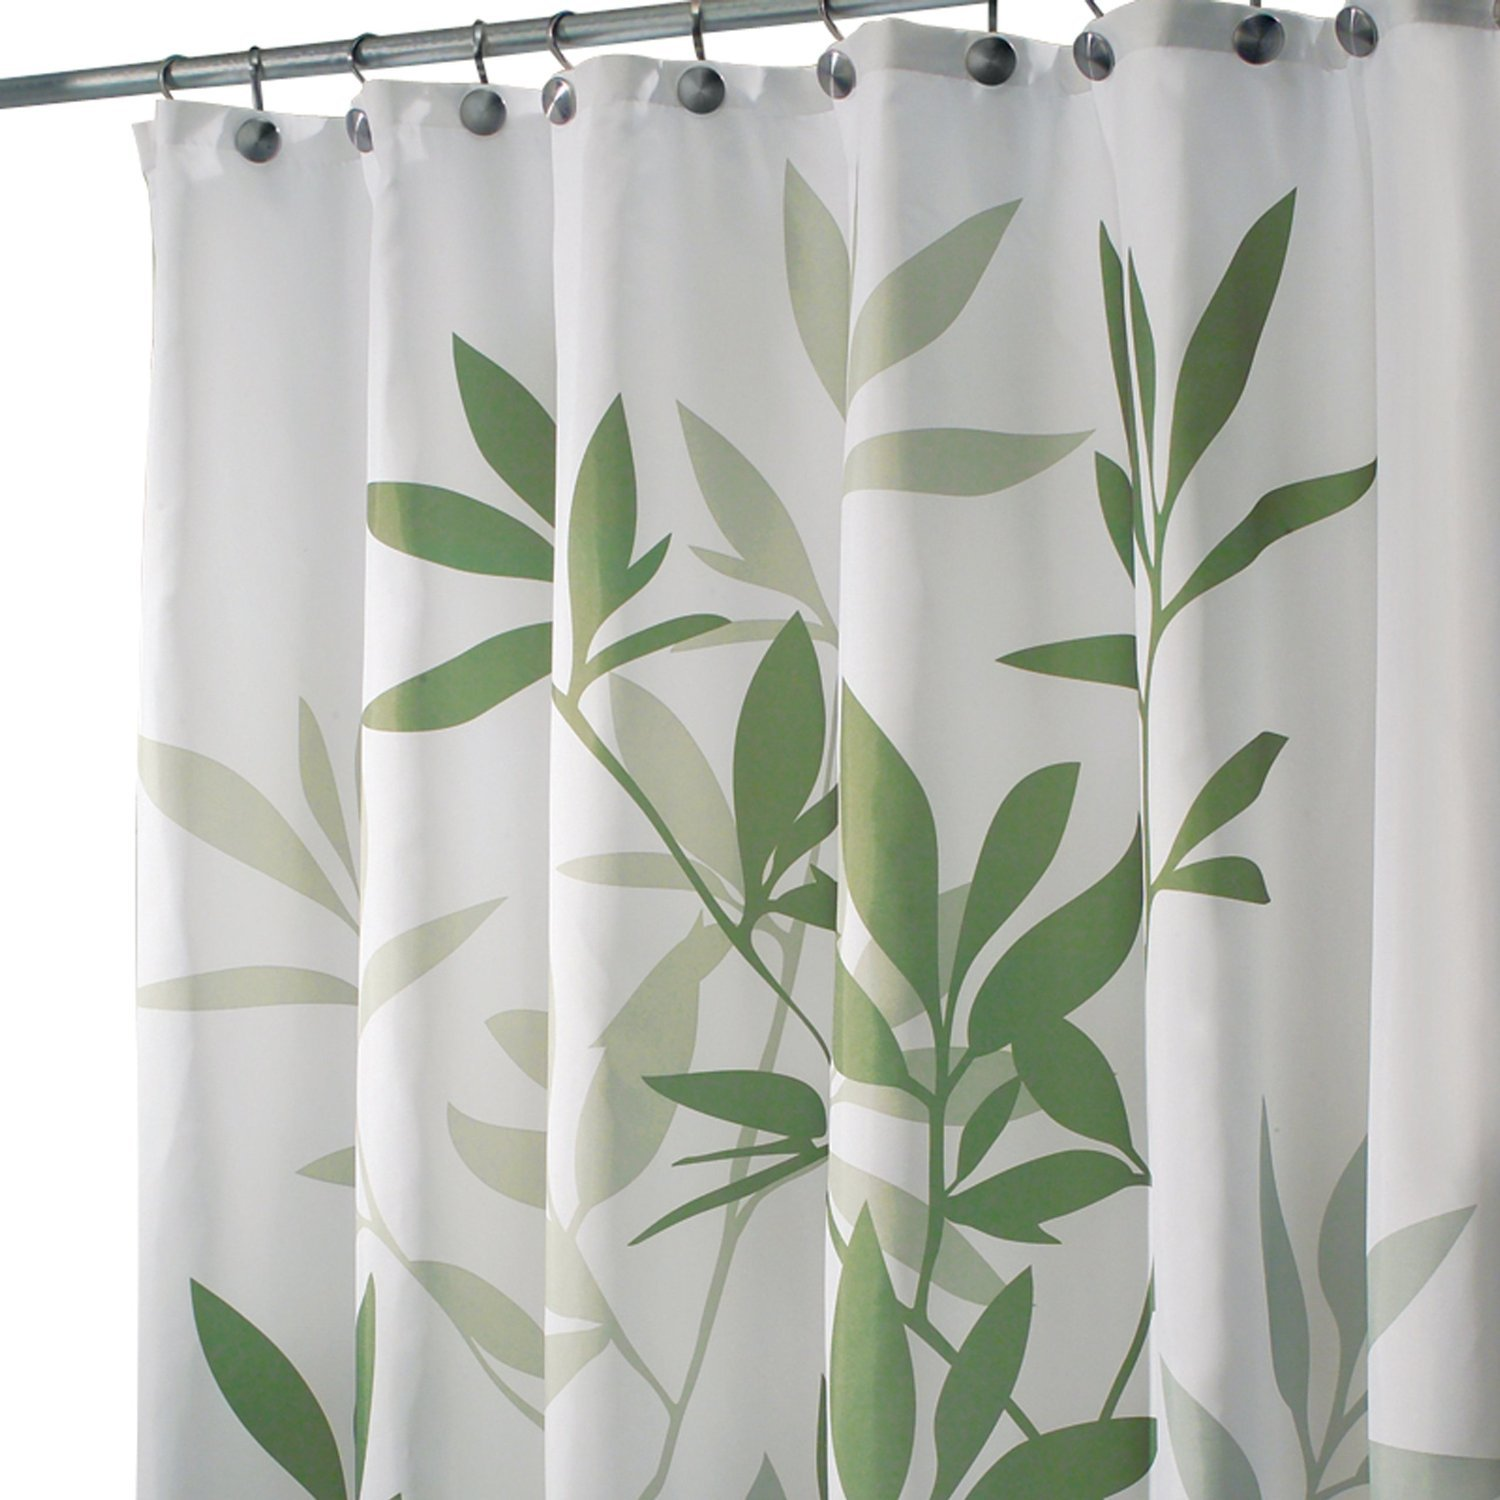 Amazon.com: InterDesign 35630 Leaves Fabric Shower Curtain ...